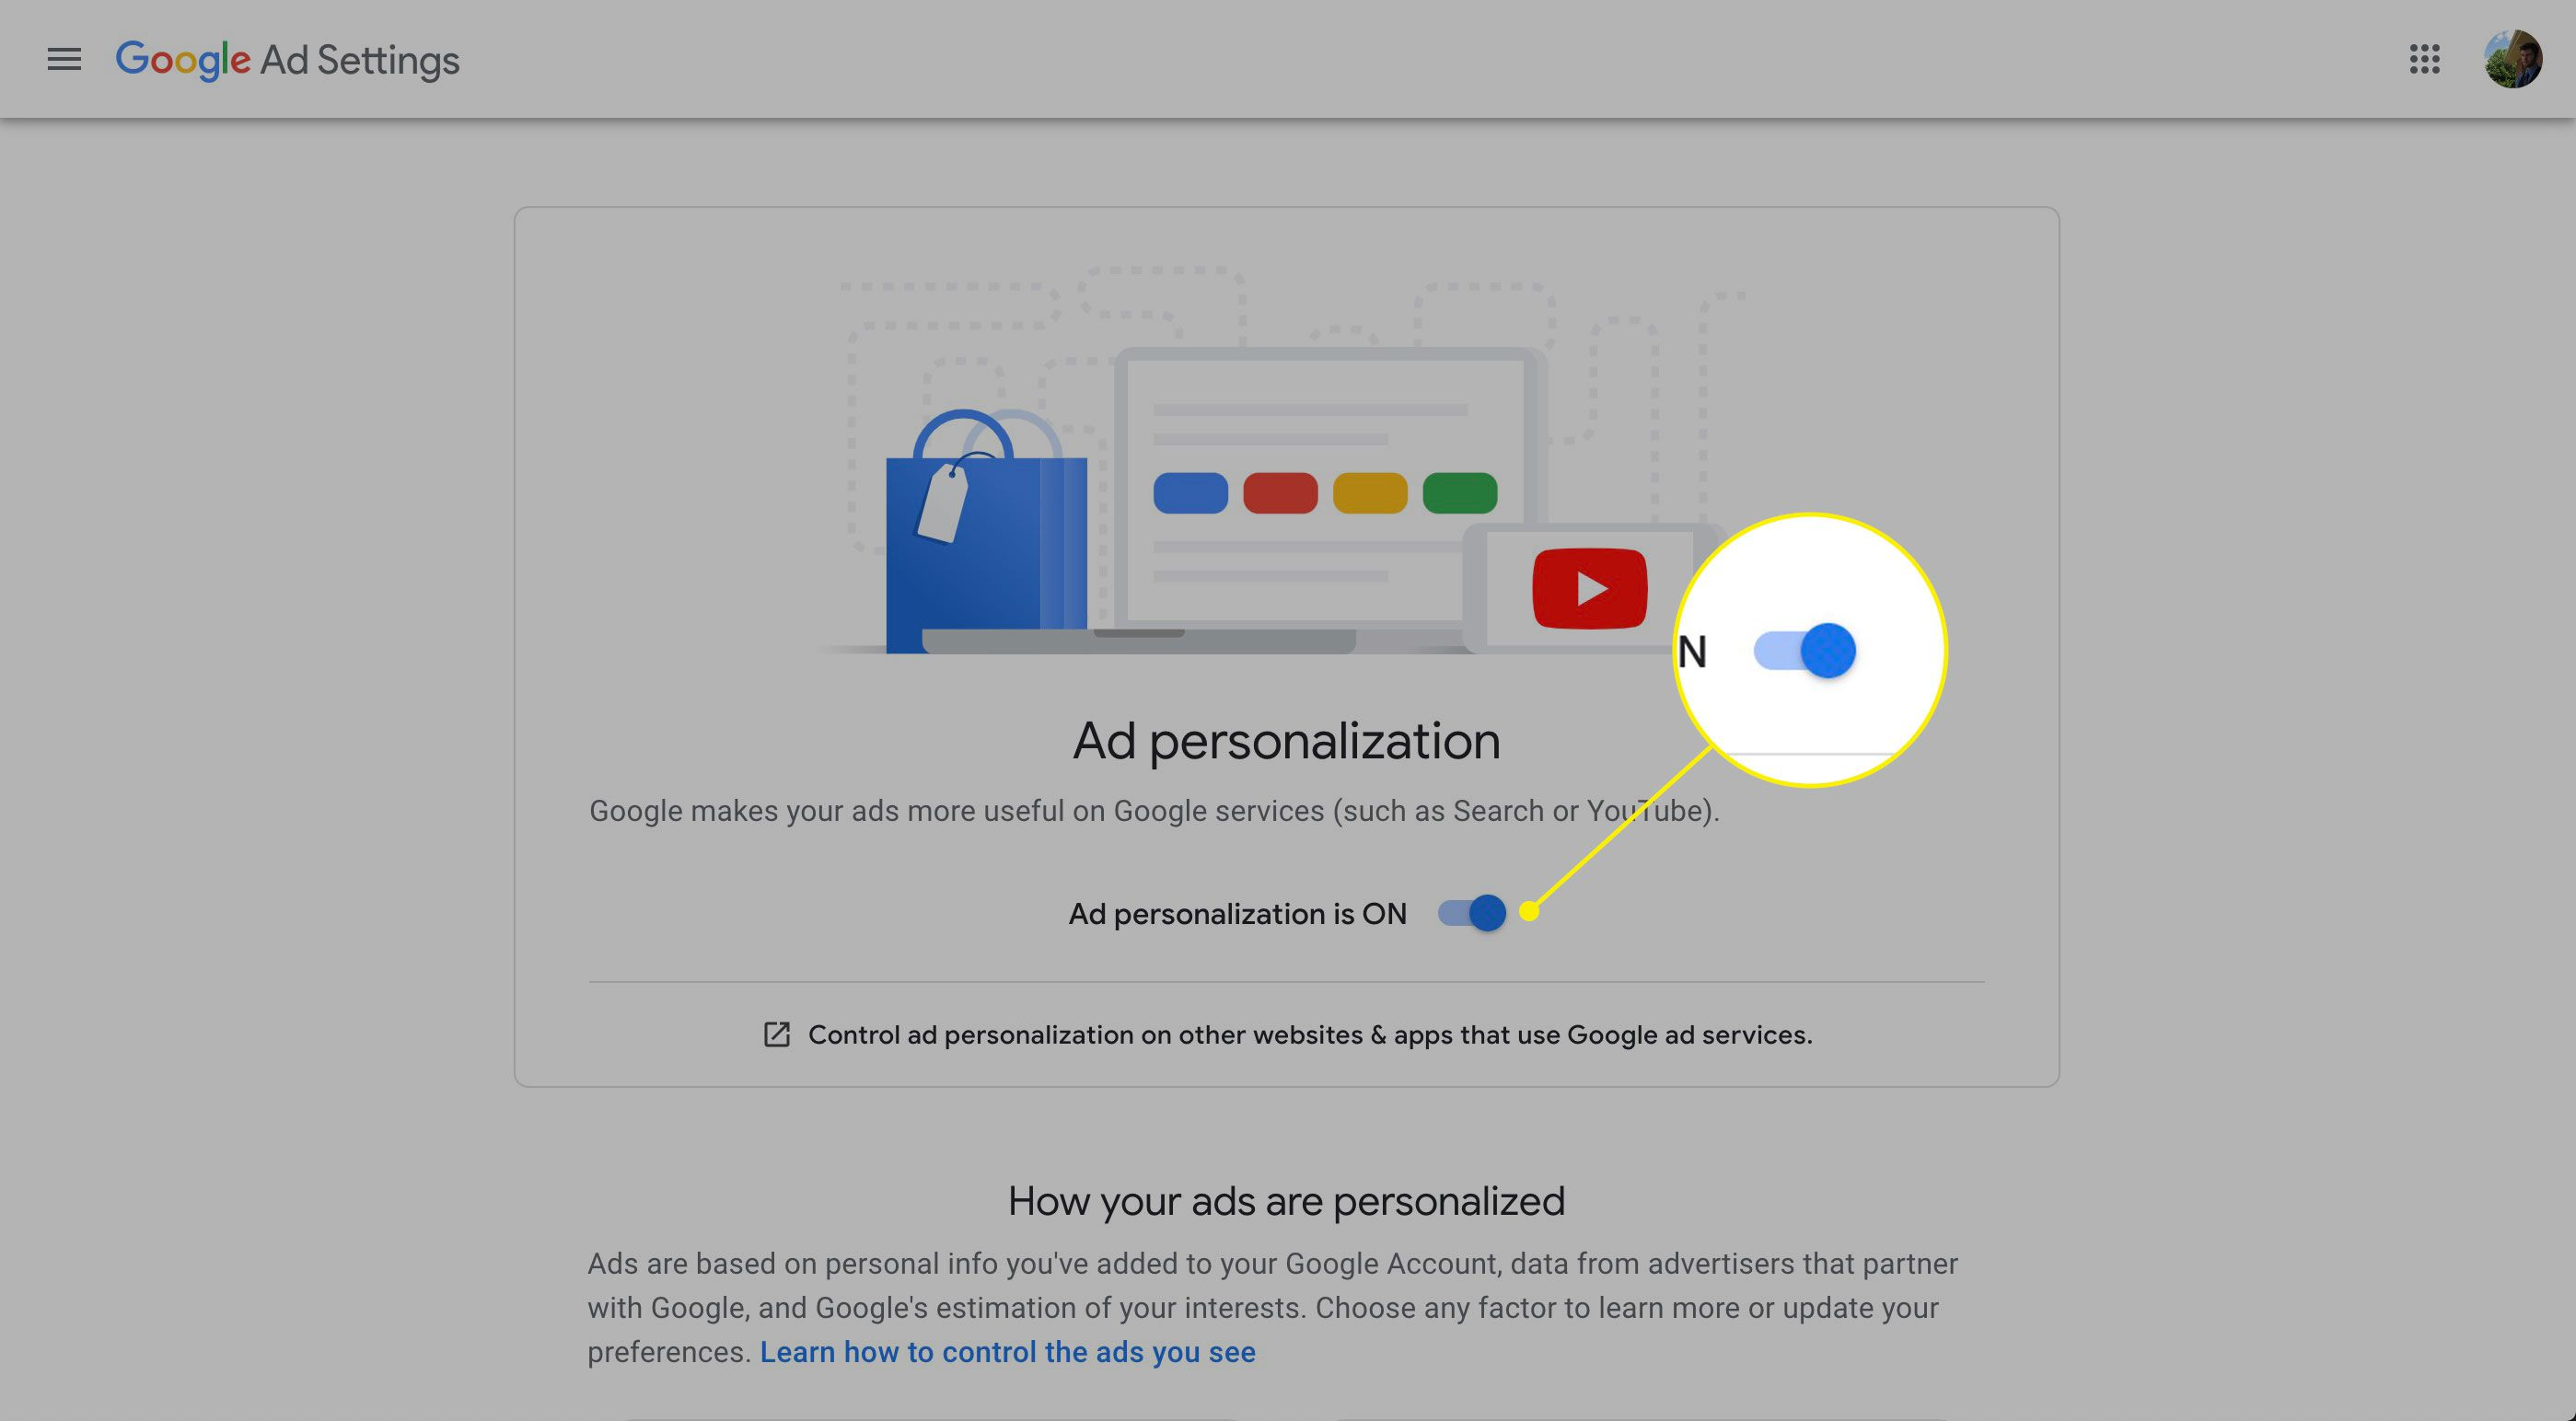 The ad personalization switch in Google Ad Settings